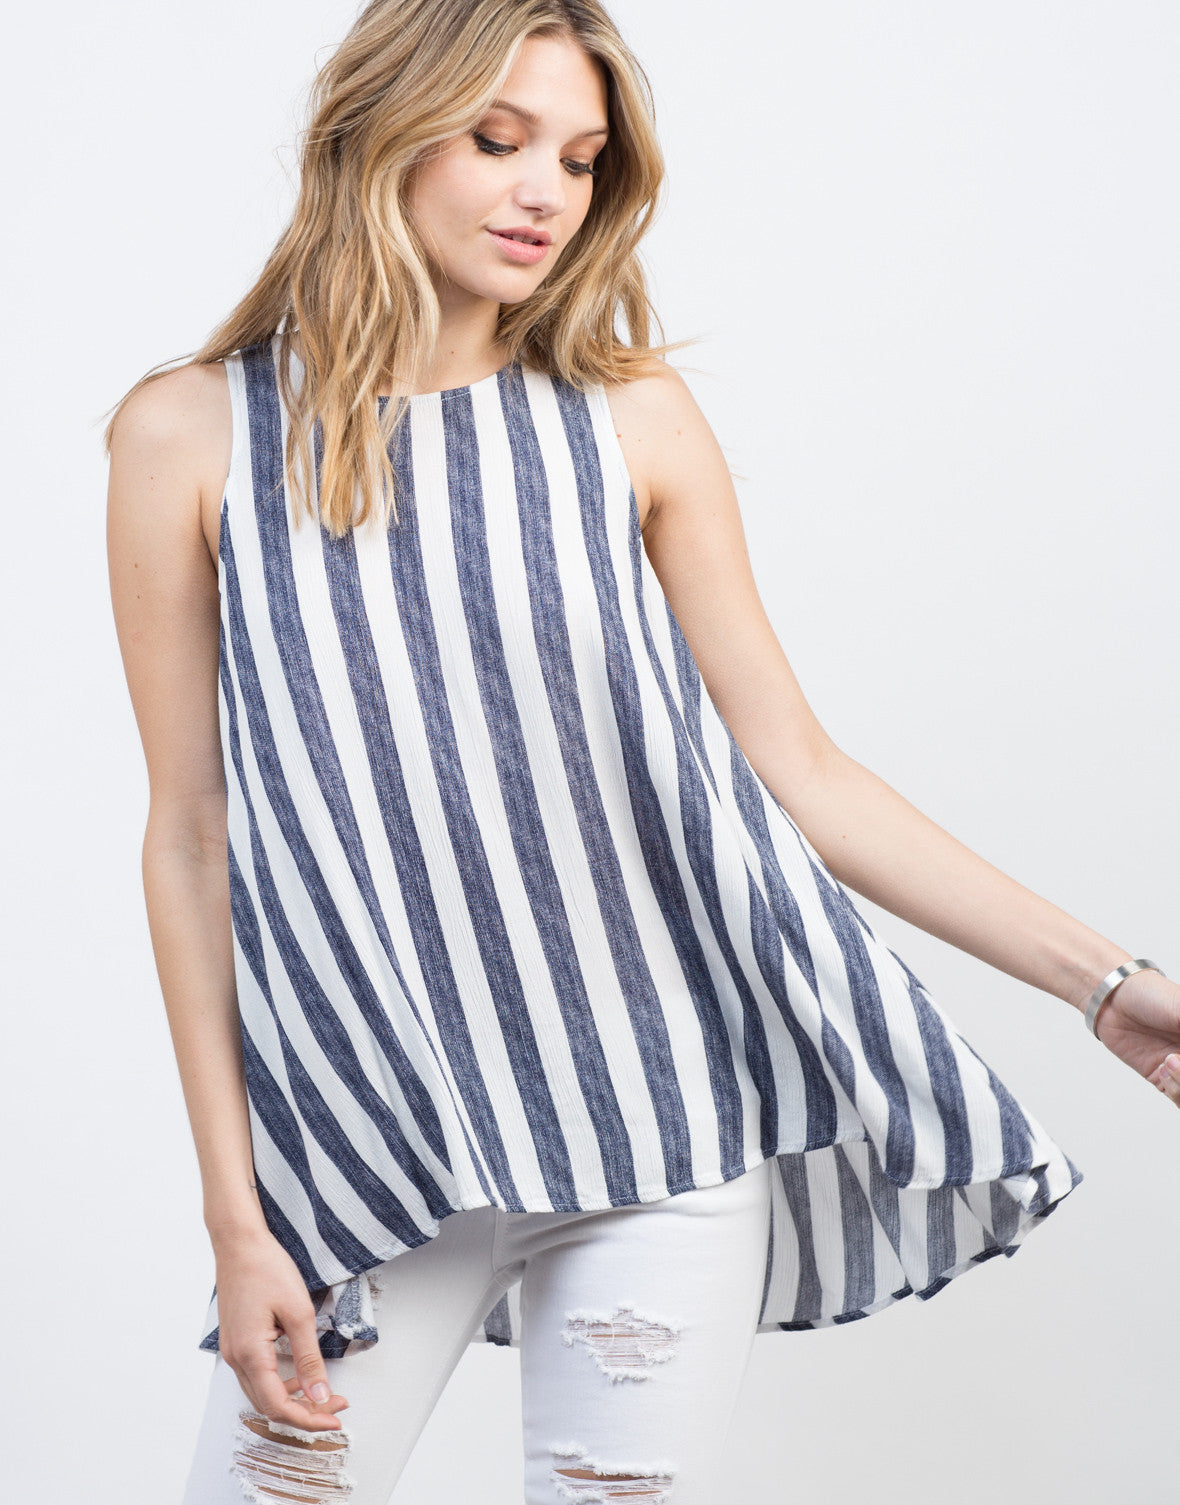 Detail of Flowy Striped Tunic Top